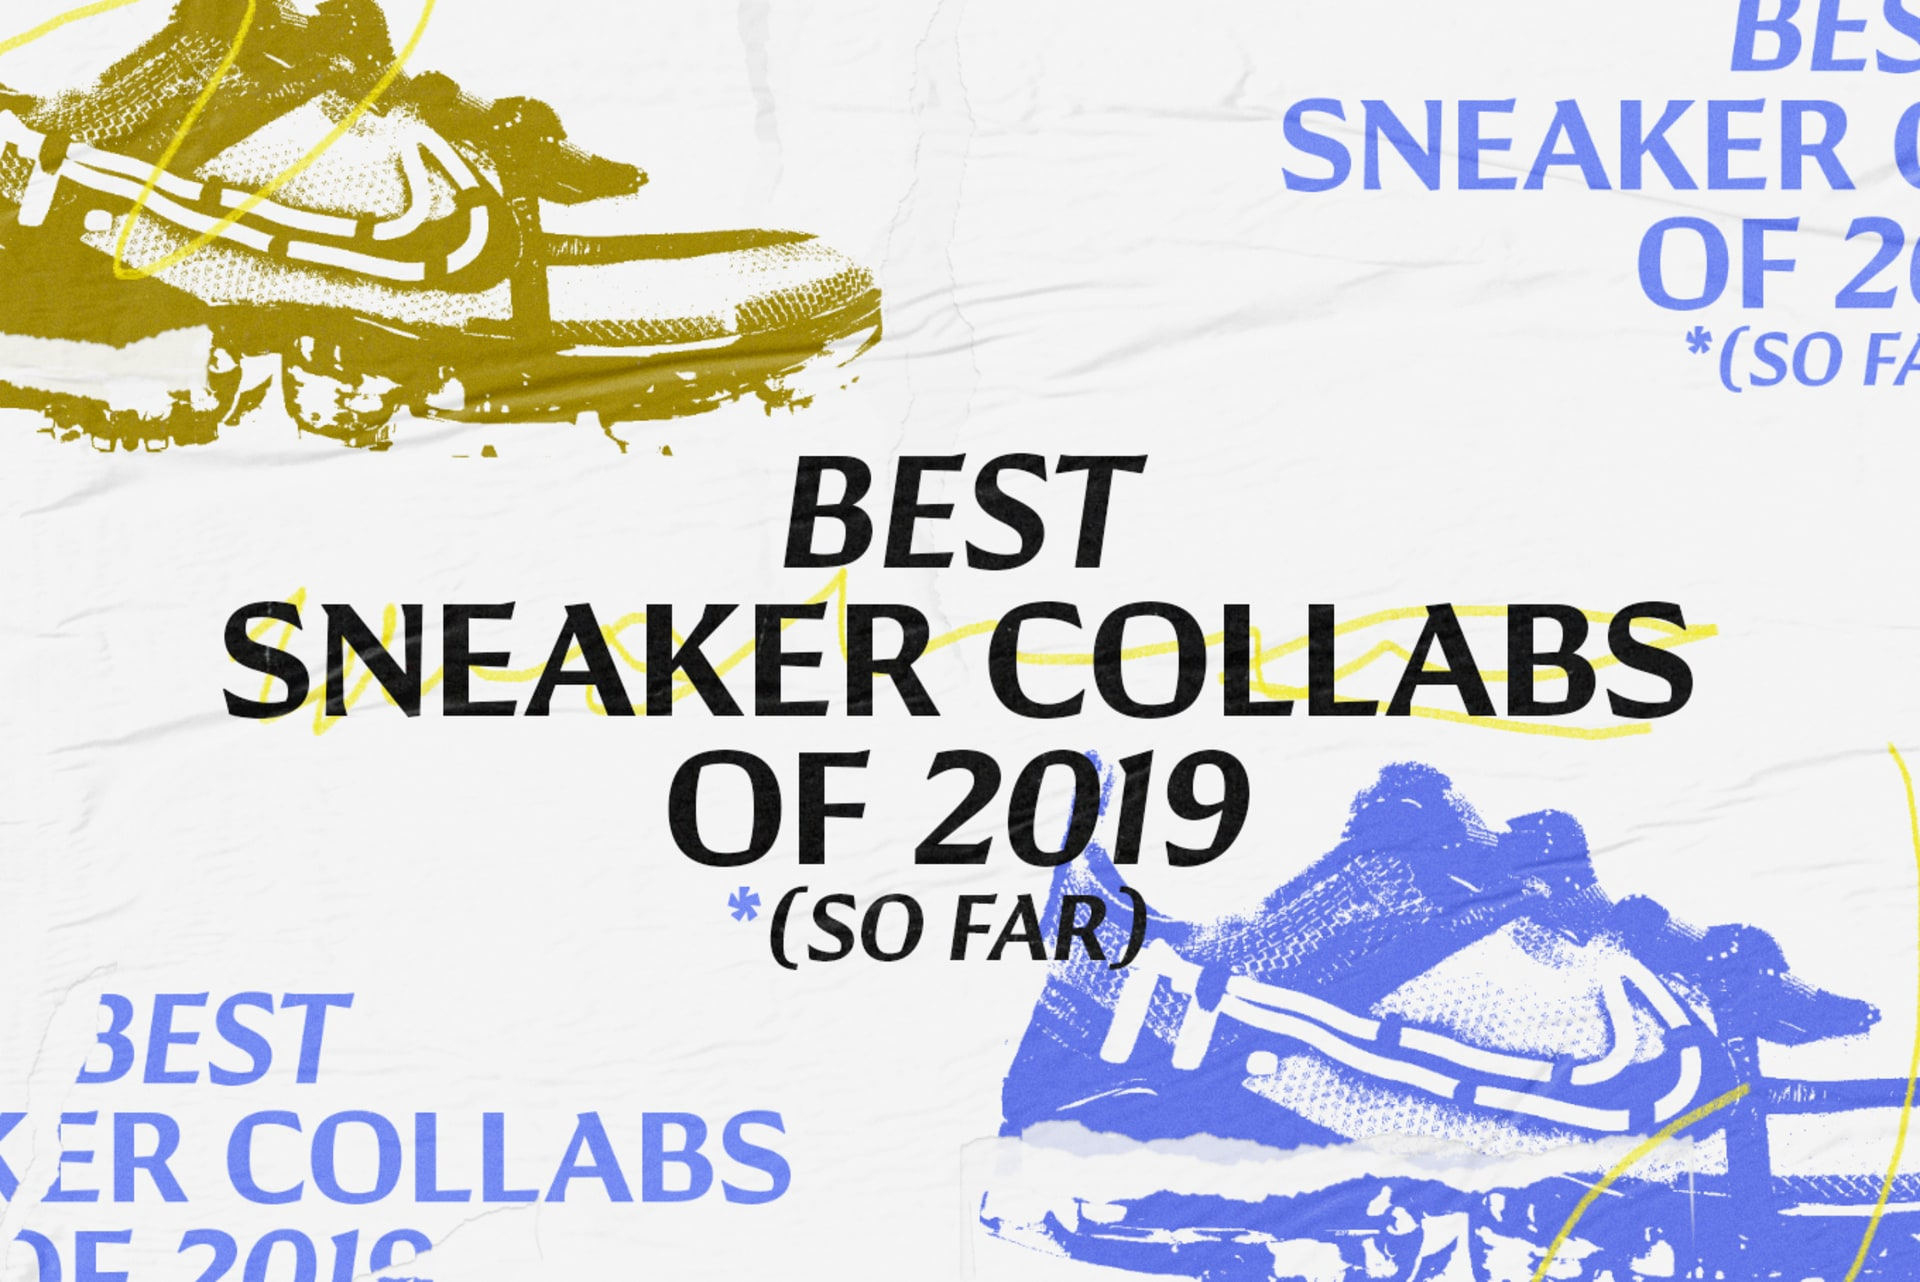 Best Sneaker Collabs 2019-so-far